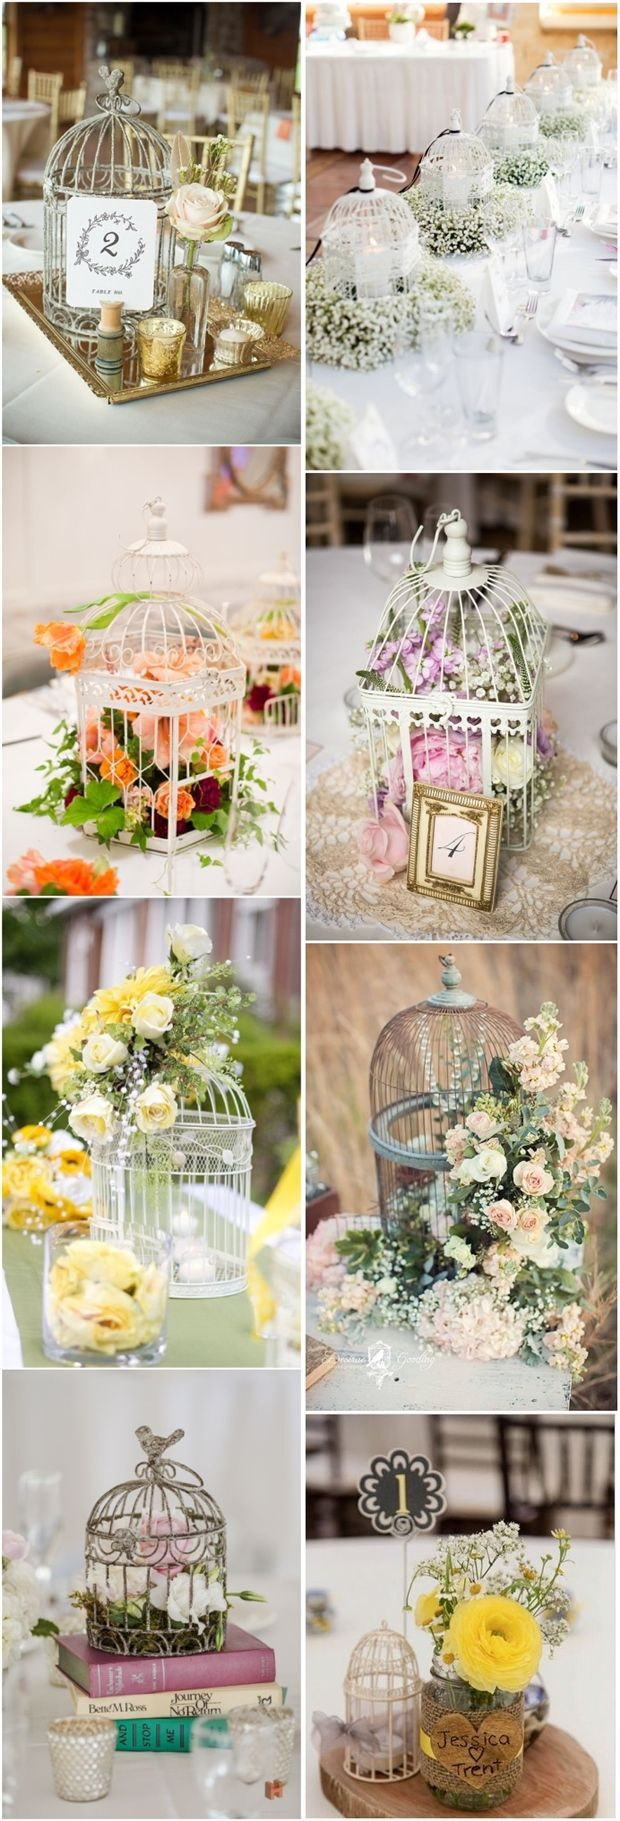 Bride to Be Reading ~ 25 Truly Amazing Birdcage Wedding Centerpieces (with Tutrial) | http://www.deerpearlflowers.com/25-truly-amazing-birdcage-wedding-centerpieces/